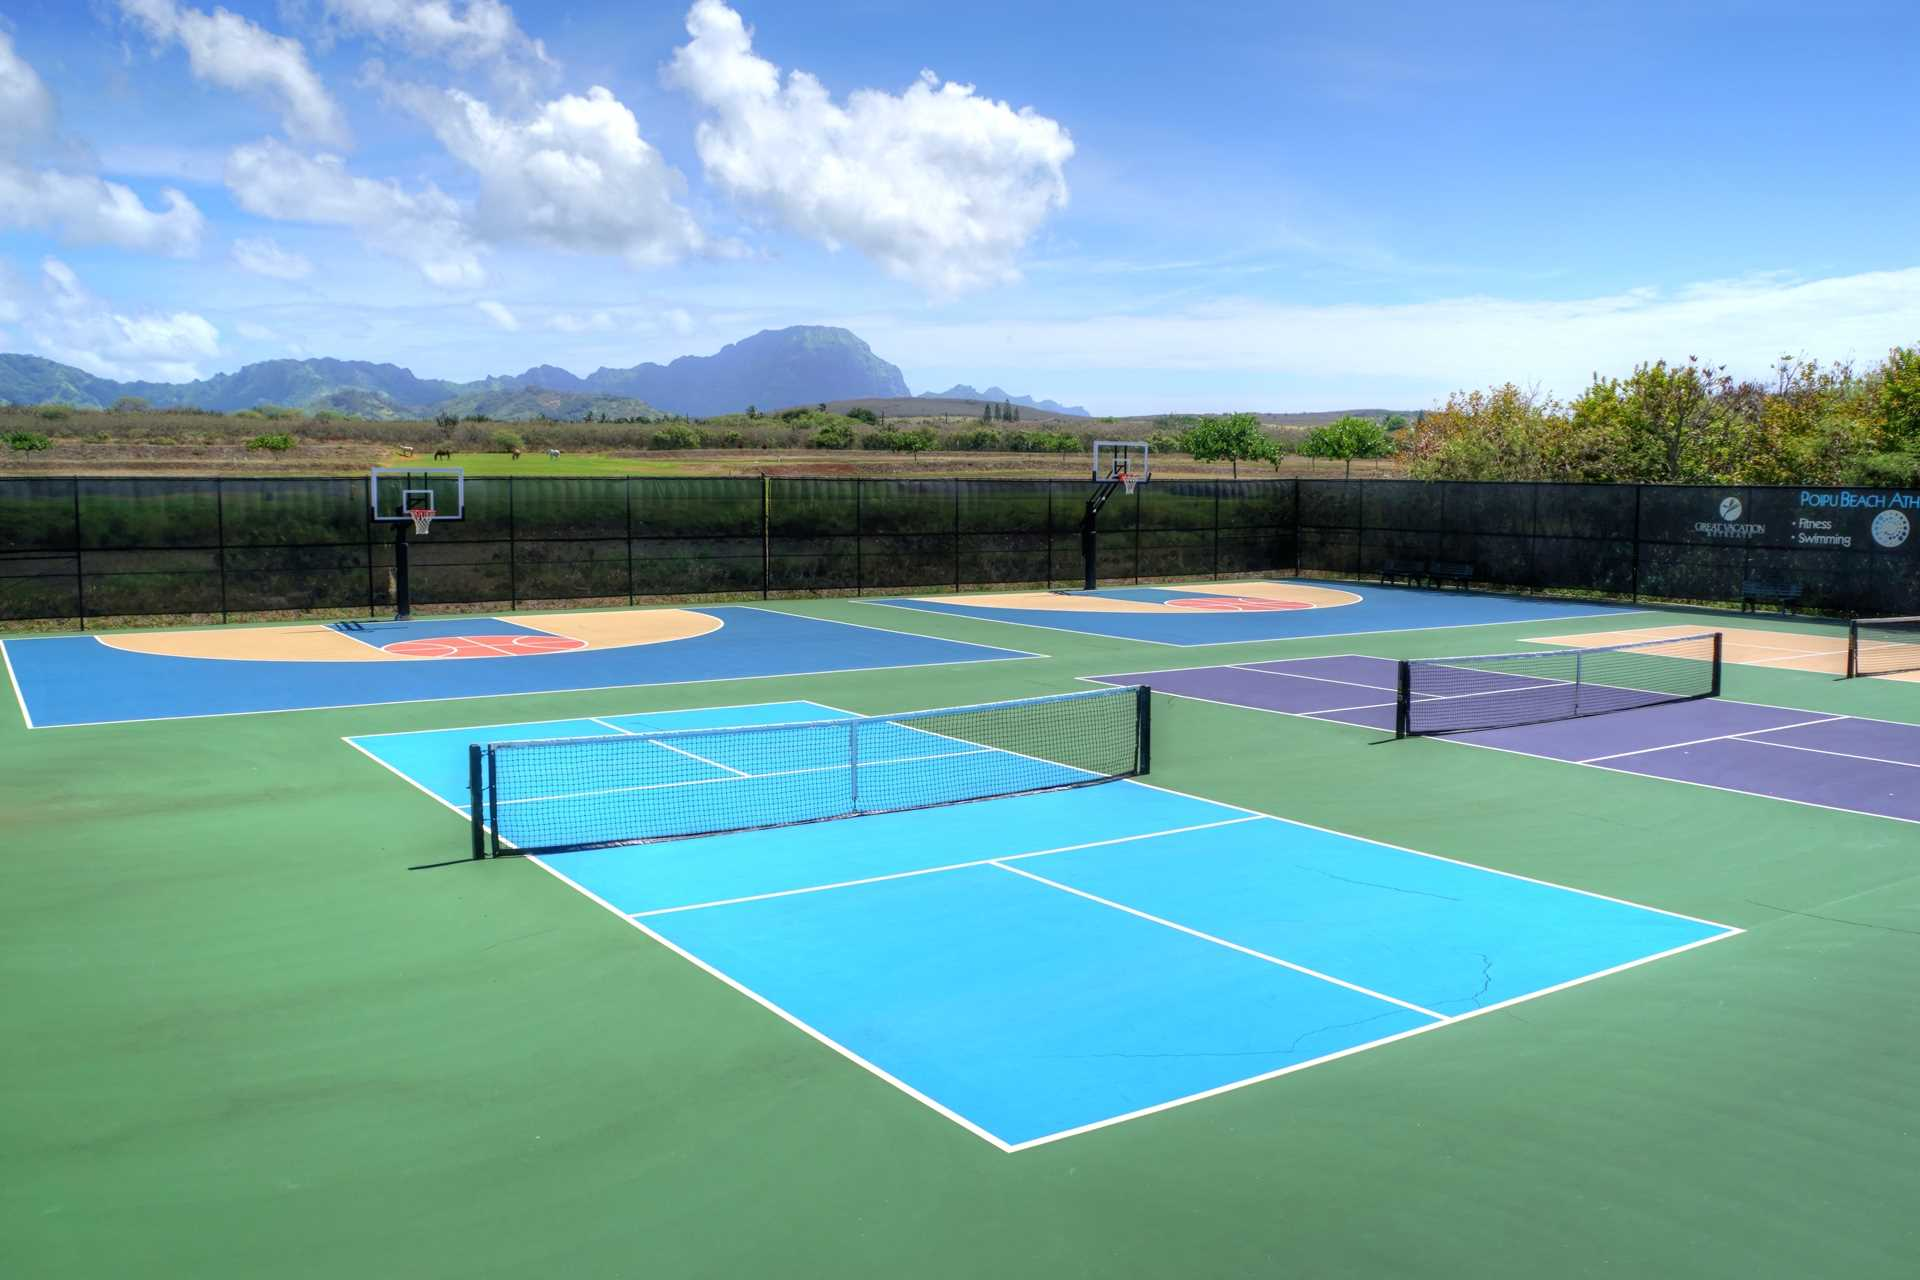 Tennis, pickleball, basketball, shuffleboard at Poipu Club, included with reservation